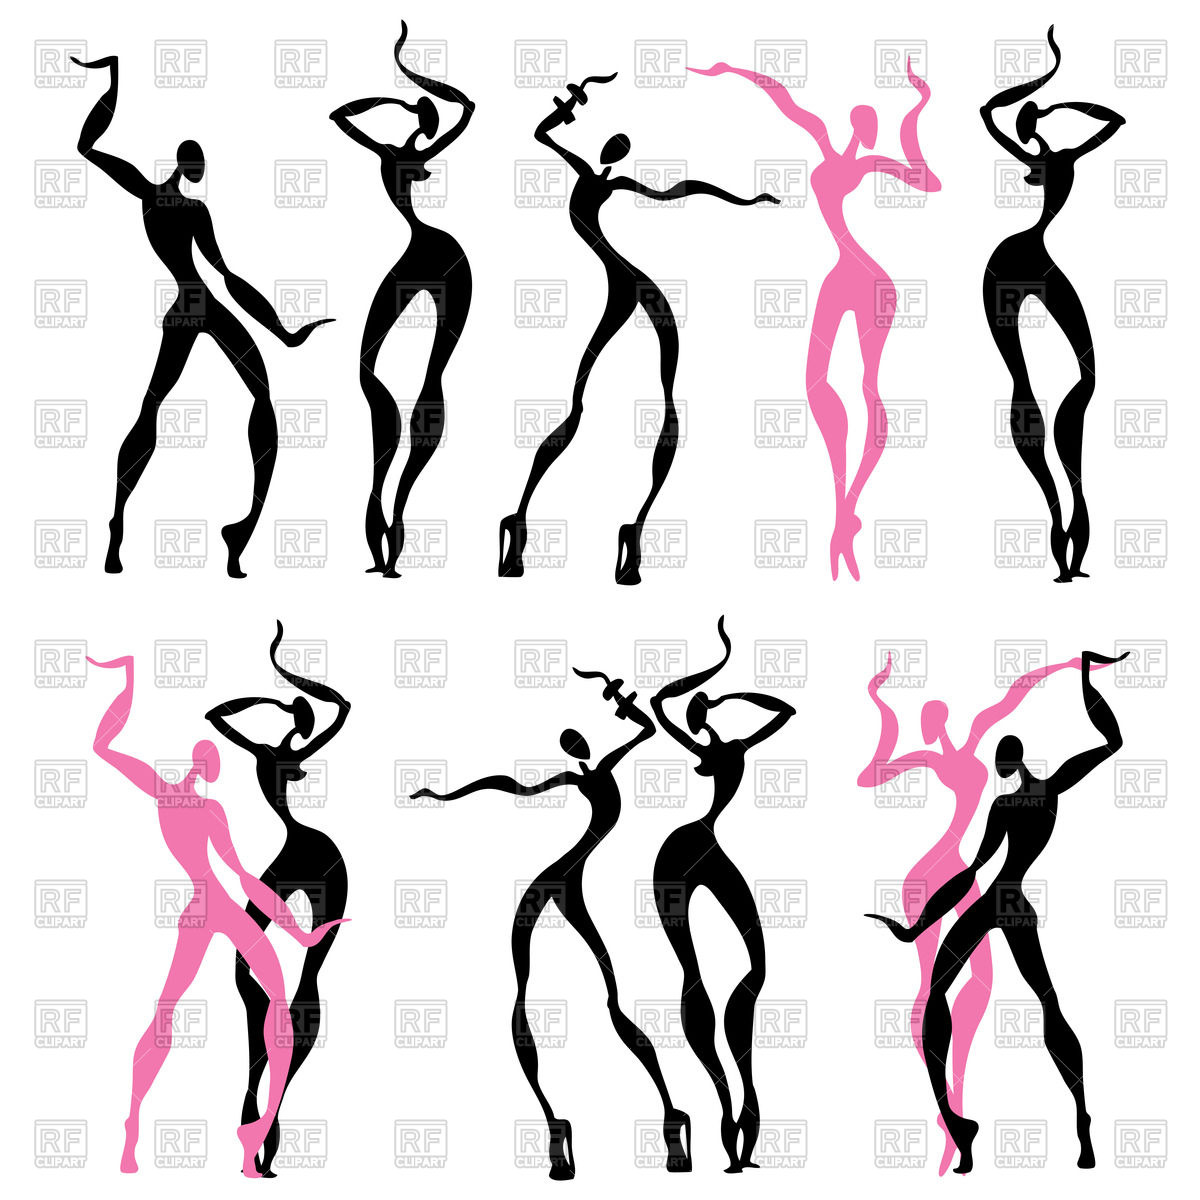 Silhouette of women's abstract dancing figures Stock Vector Image.